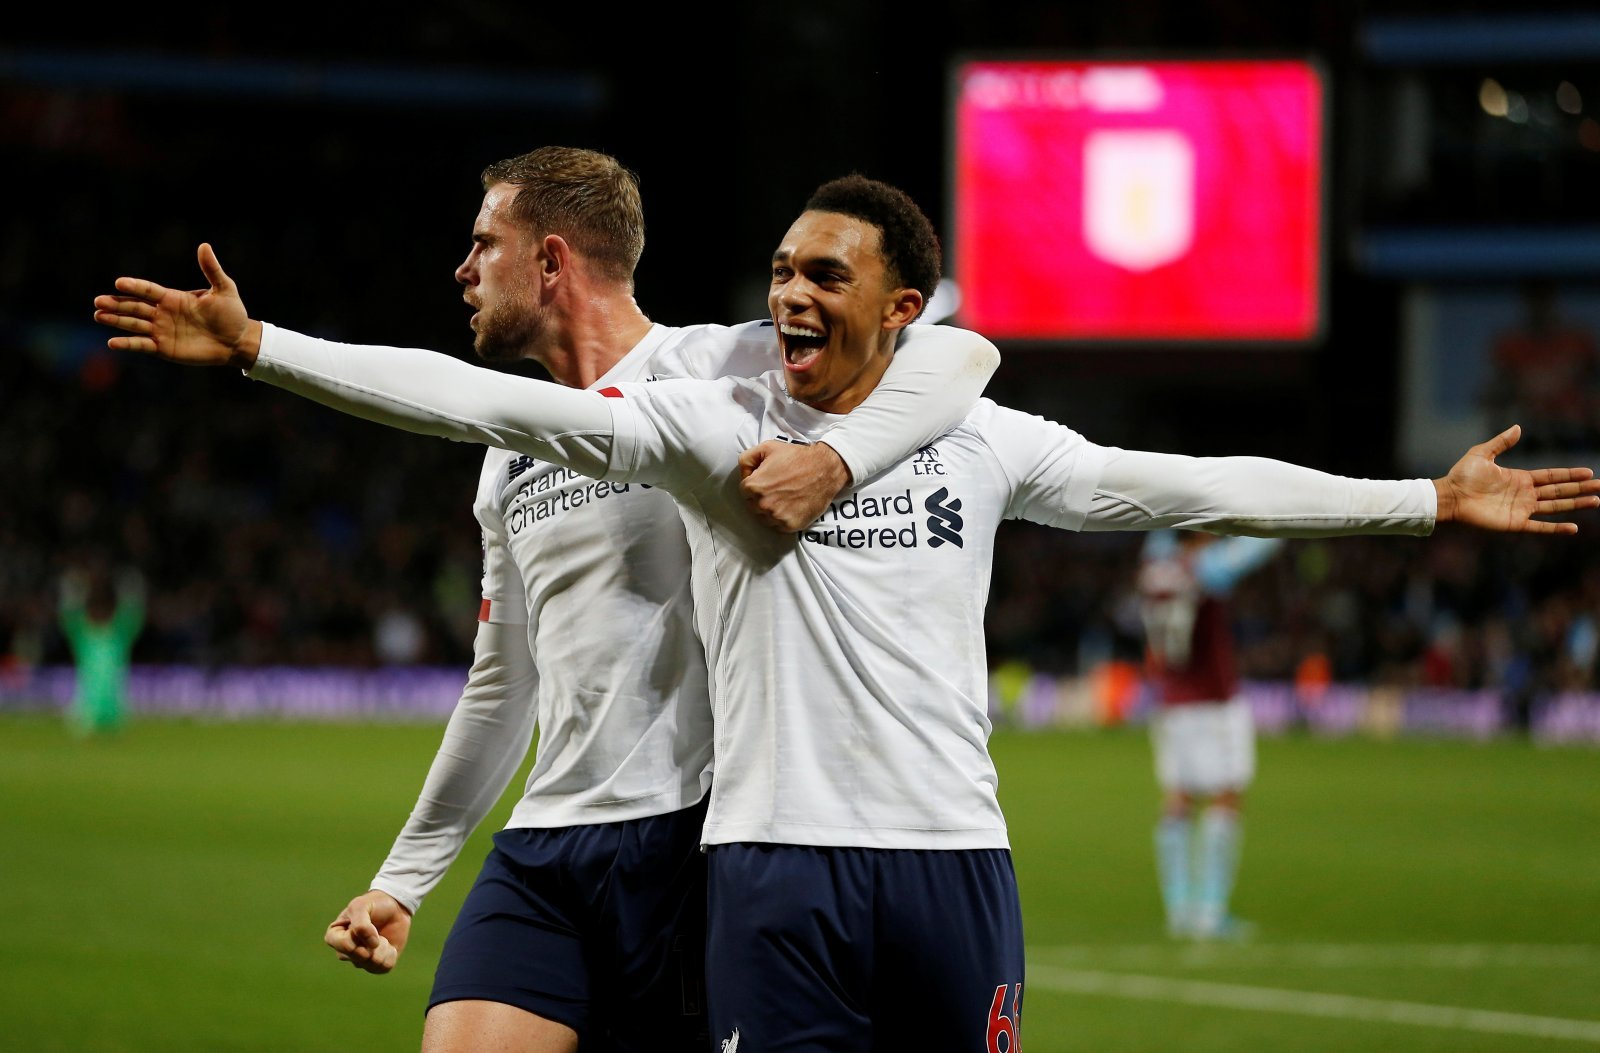 Liverpool: Fans cannot agree on whether they want to see Trent Alexander-Arnold play in midfield